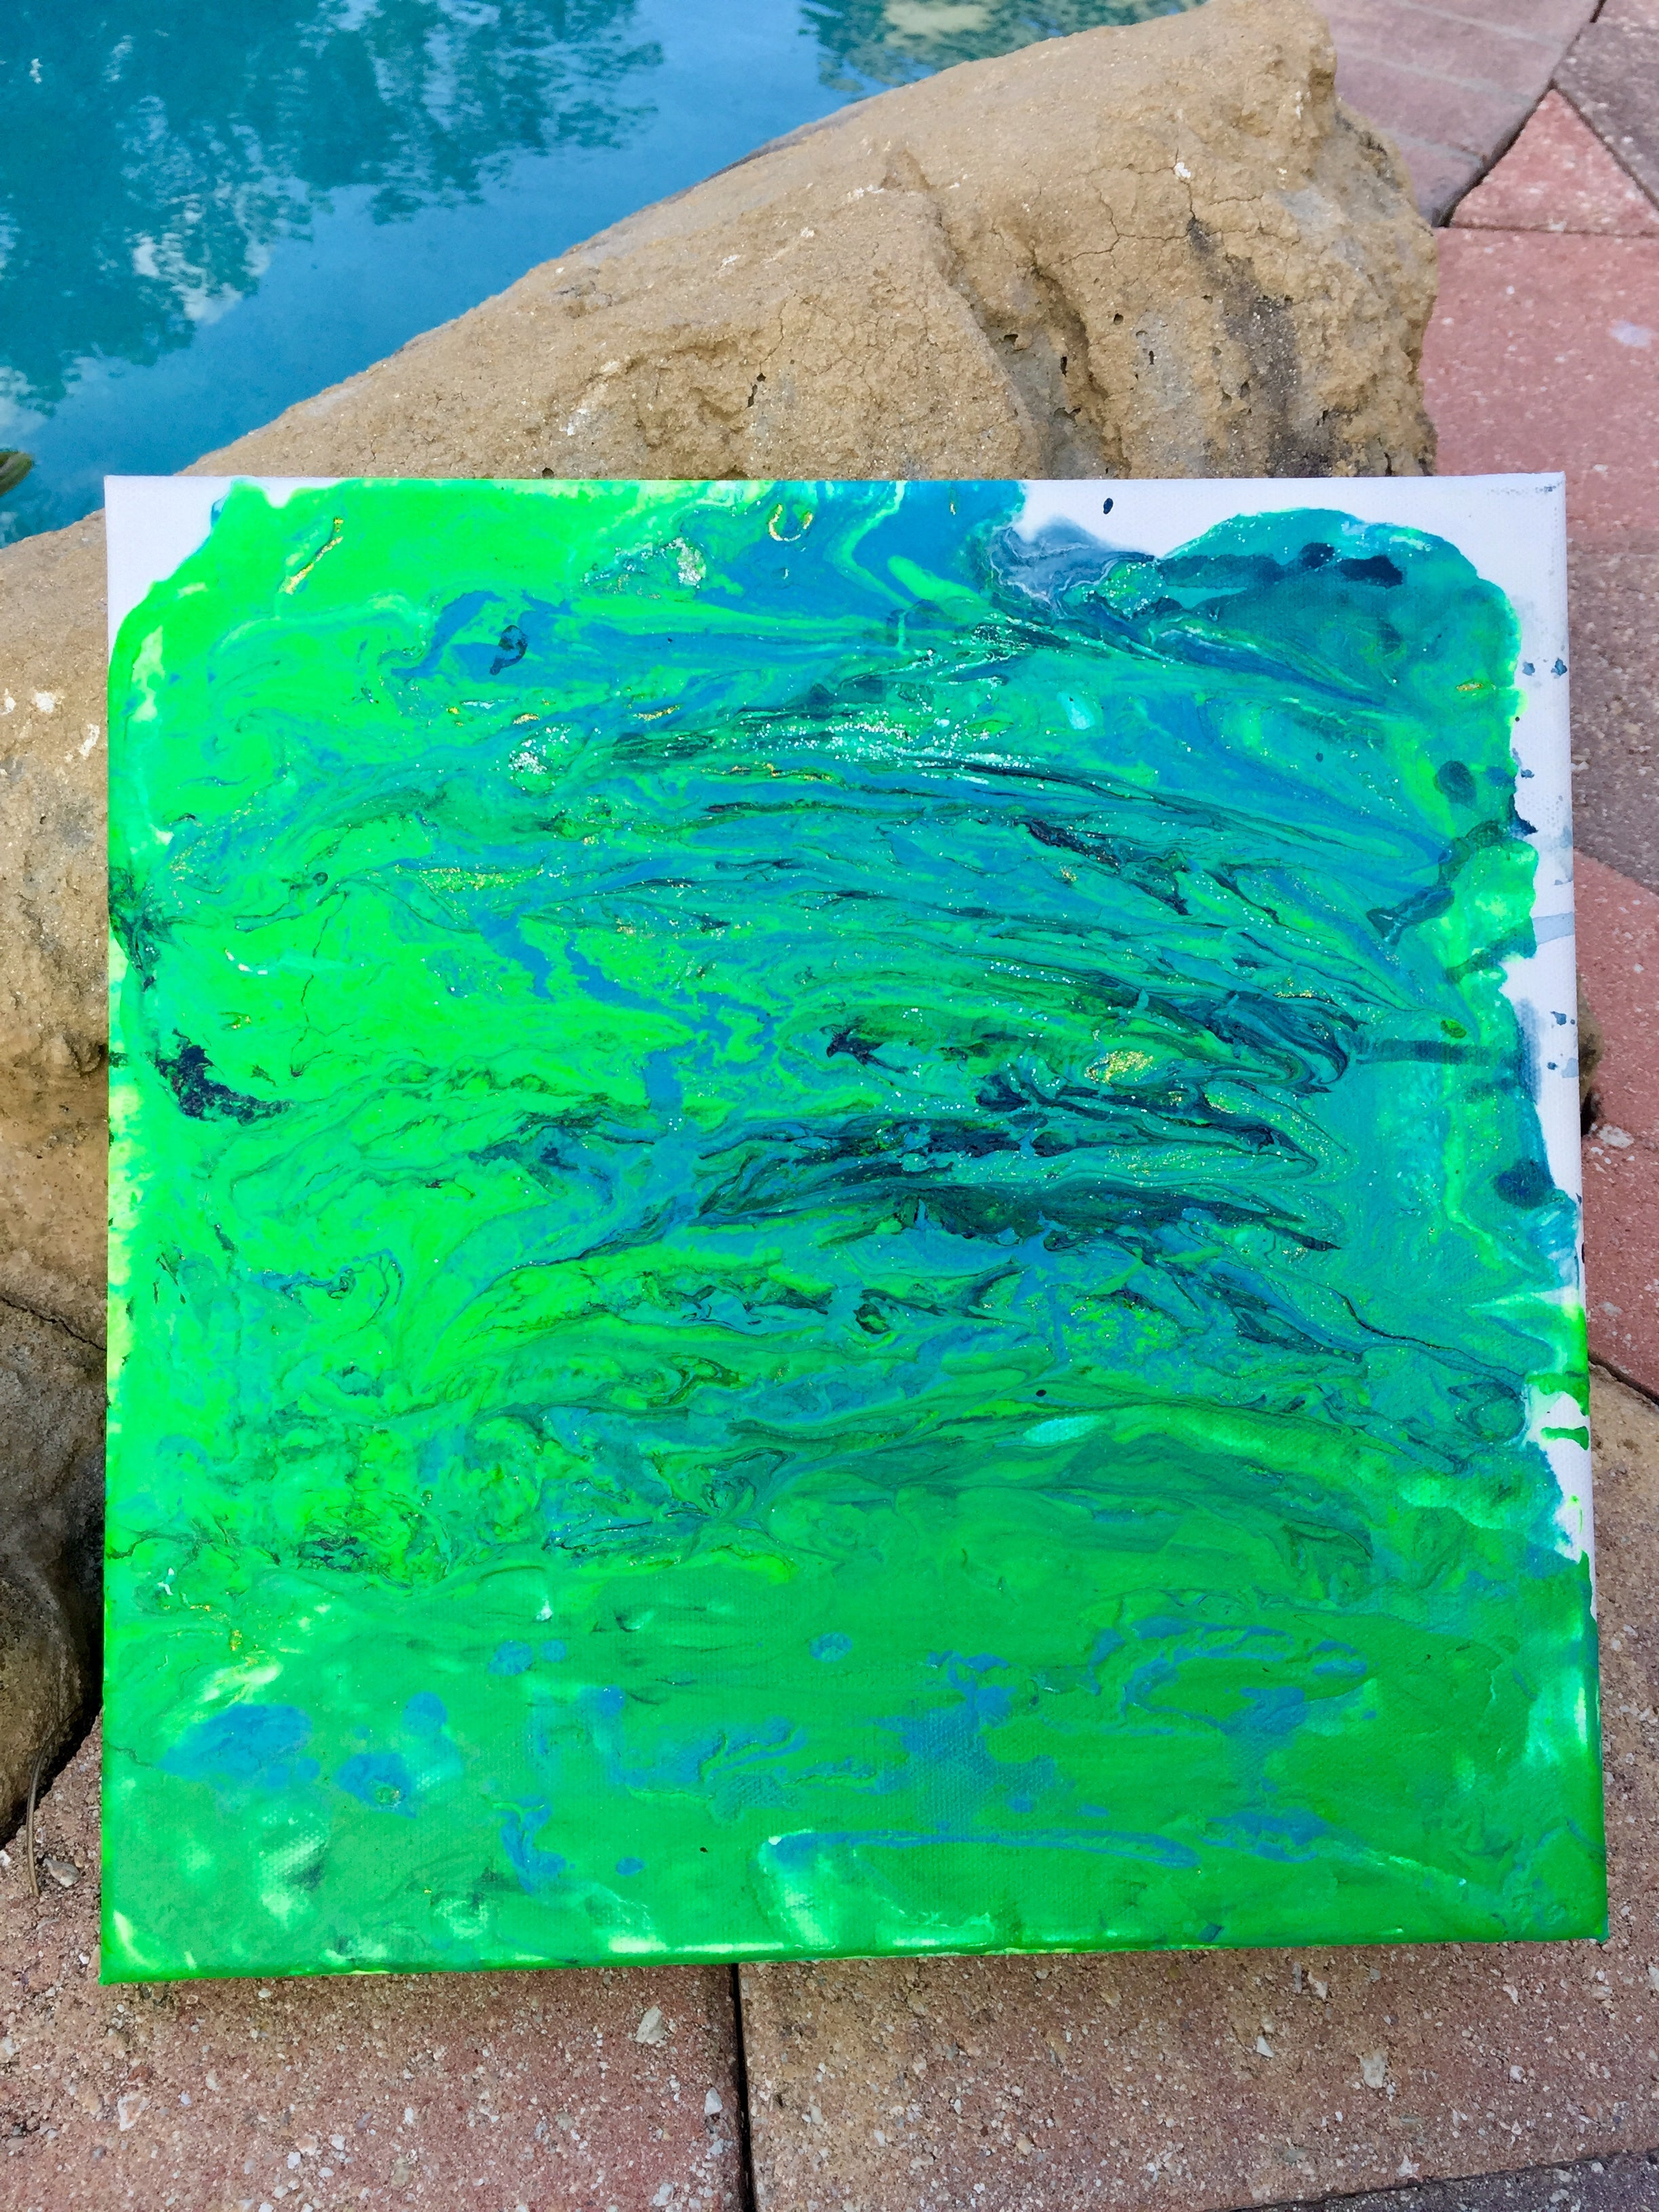 Arts & Crafts: Color Theory & Fluid Painting